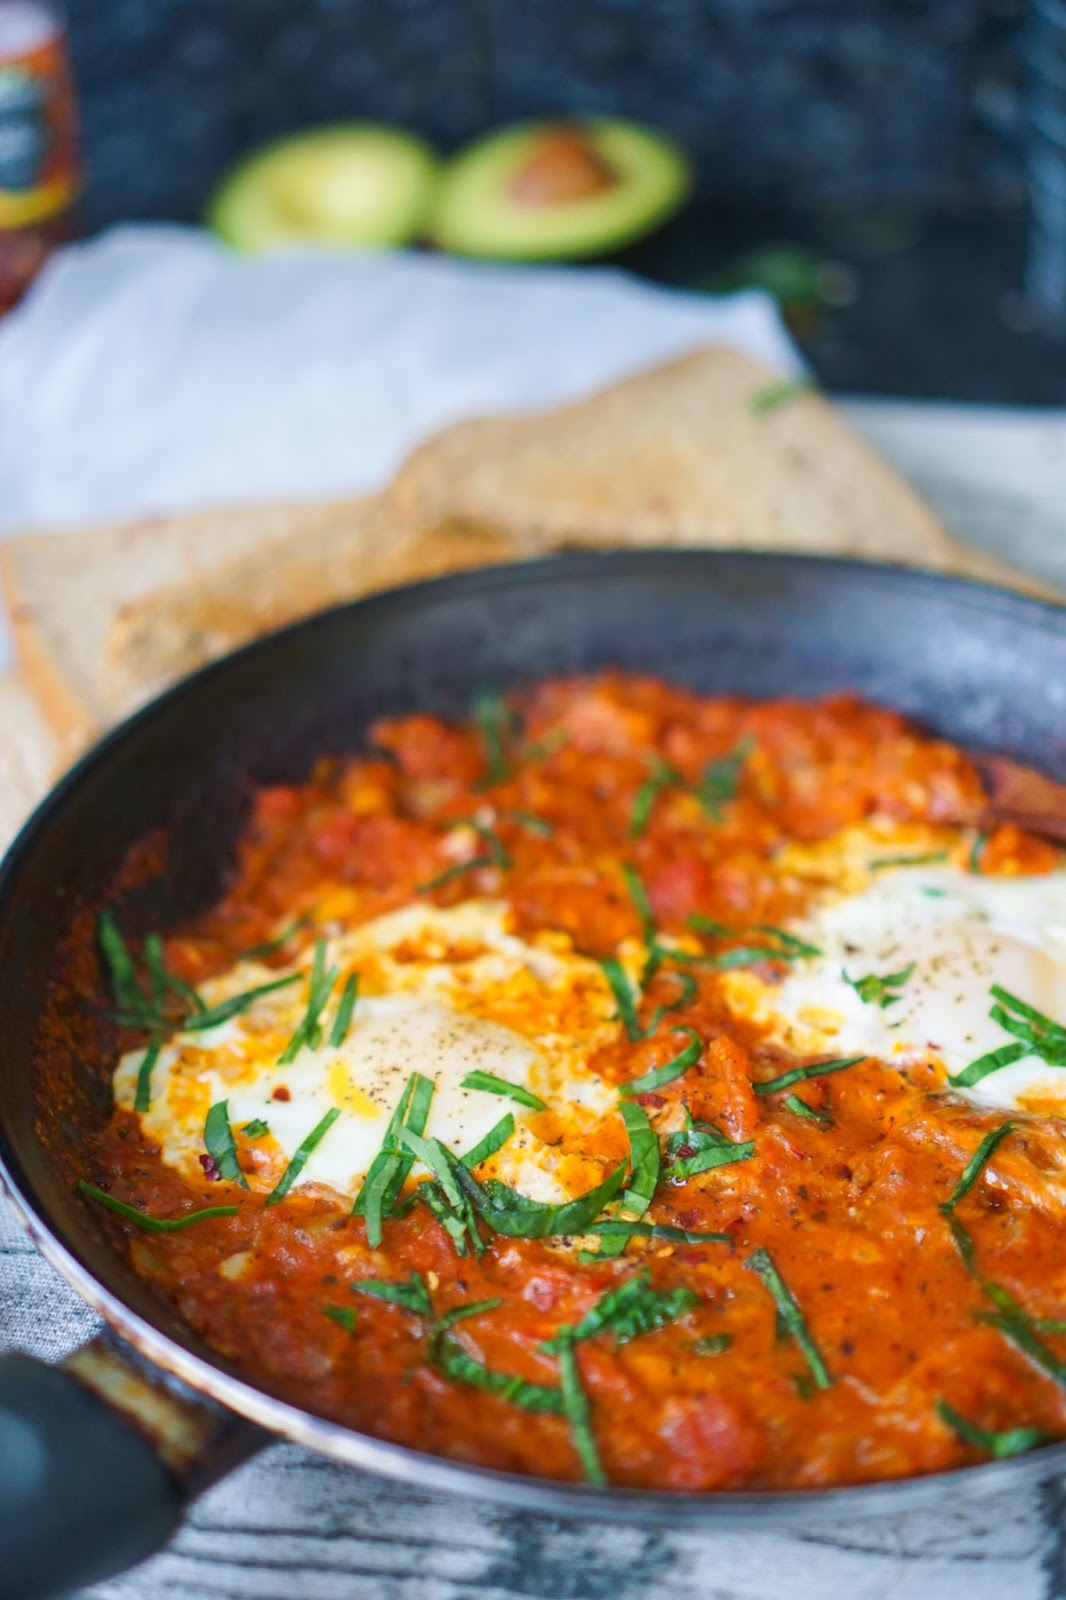 Easy breakfast recipes holidays egg breakfast ideas hungry for in the video below you will learn how to make cheesy shrimp quesadilla and shakshuka which is a tomato sauce and egg based dish forumfinder Image collections